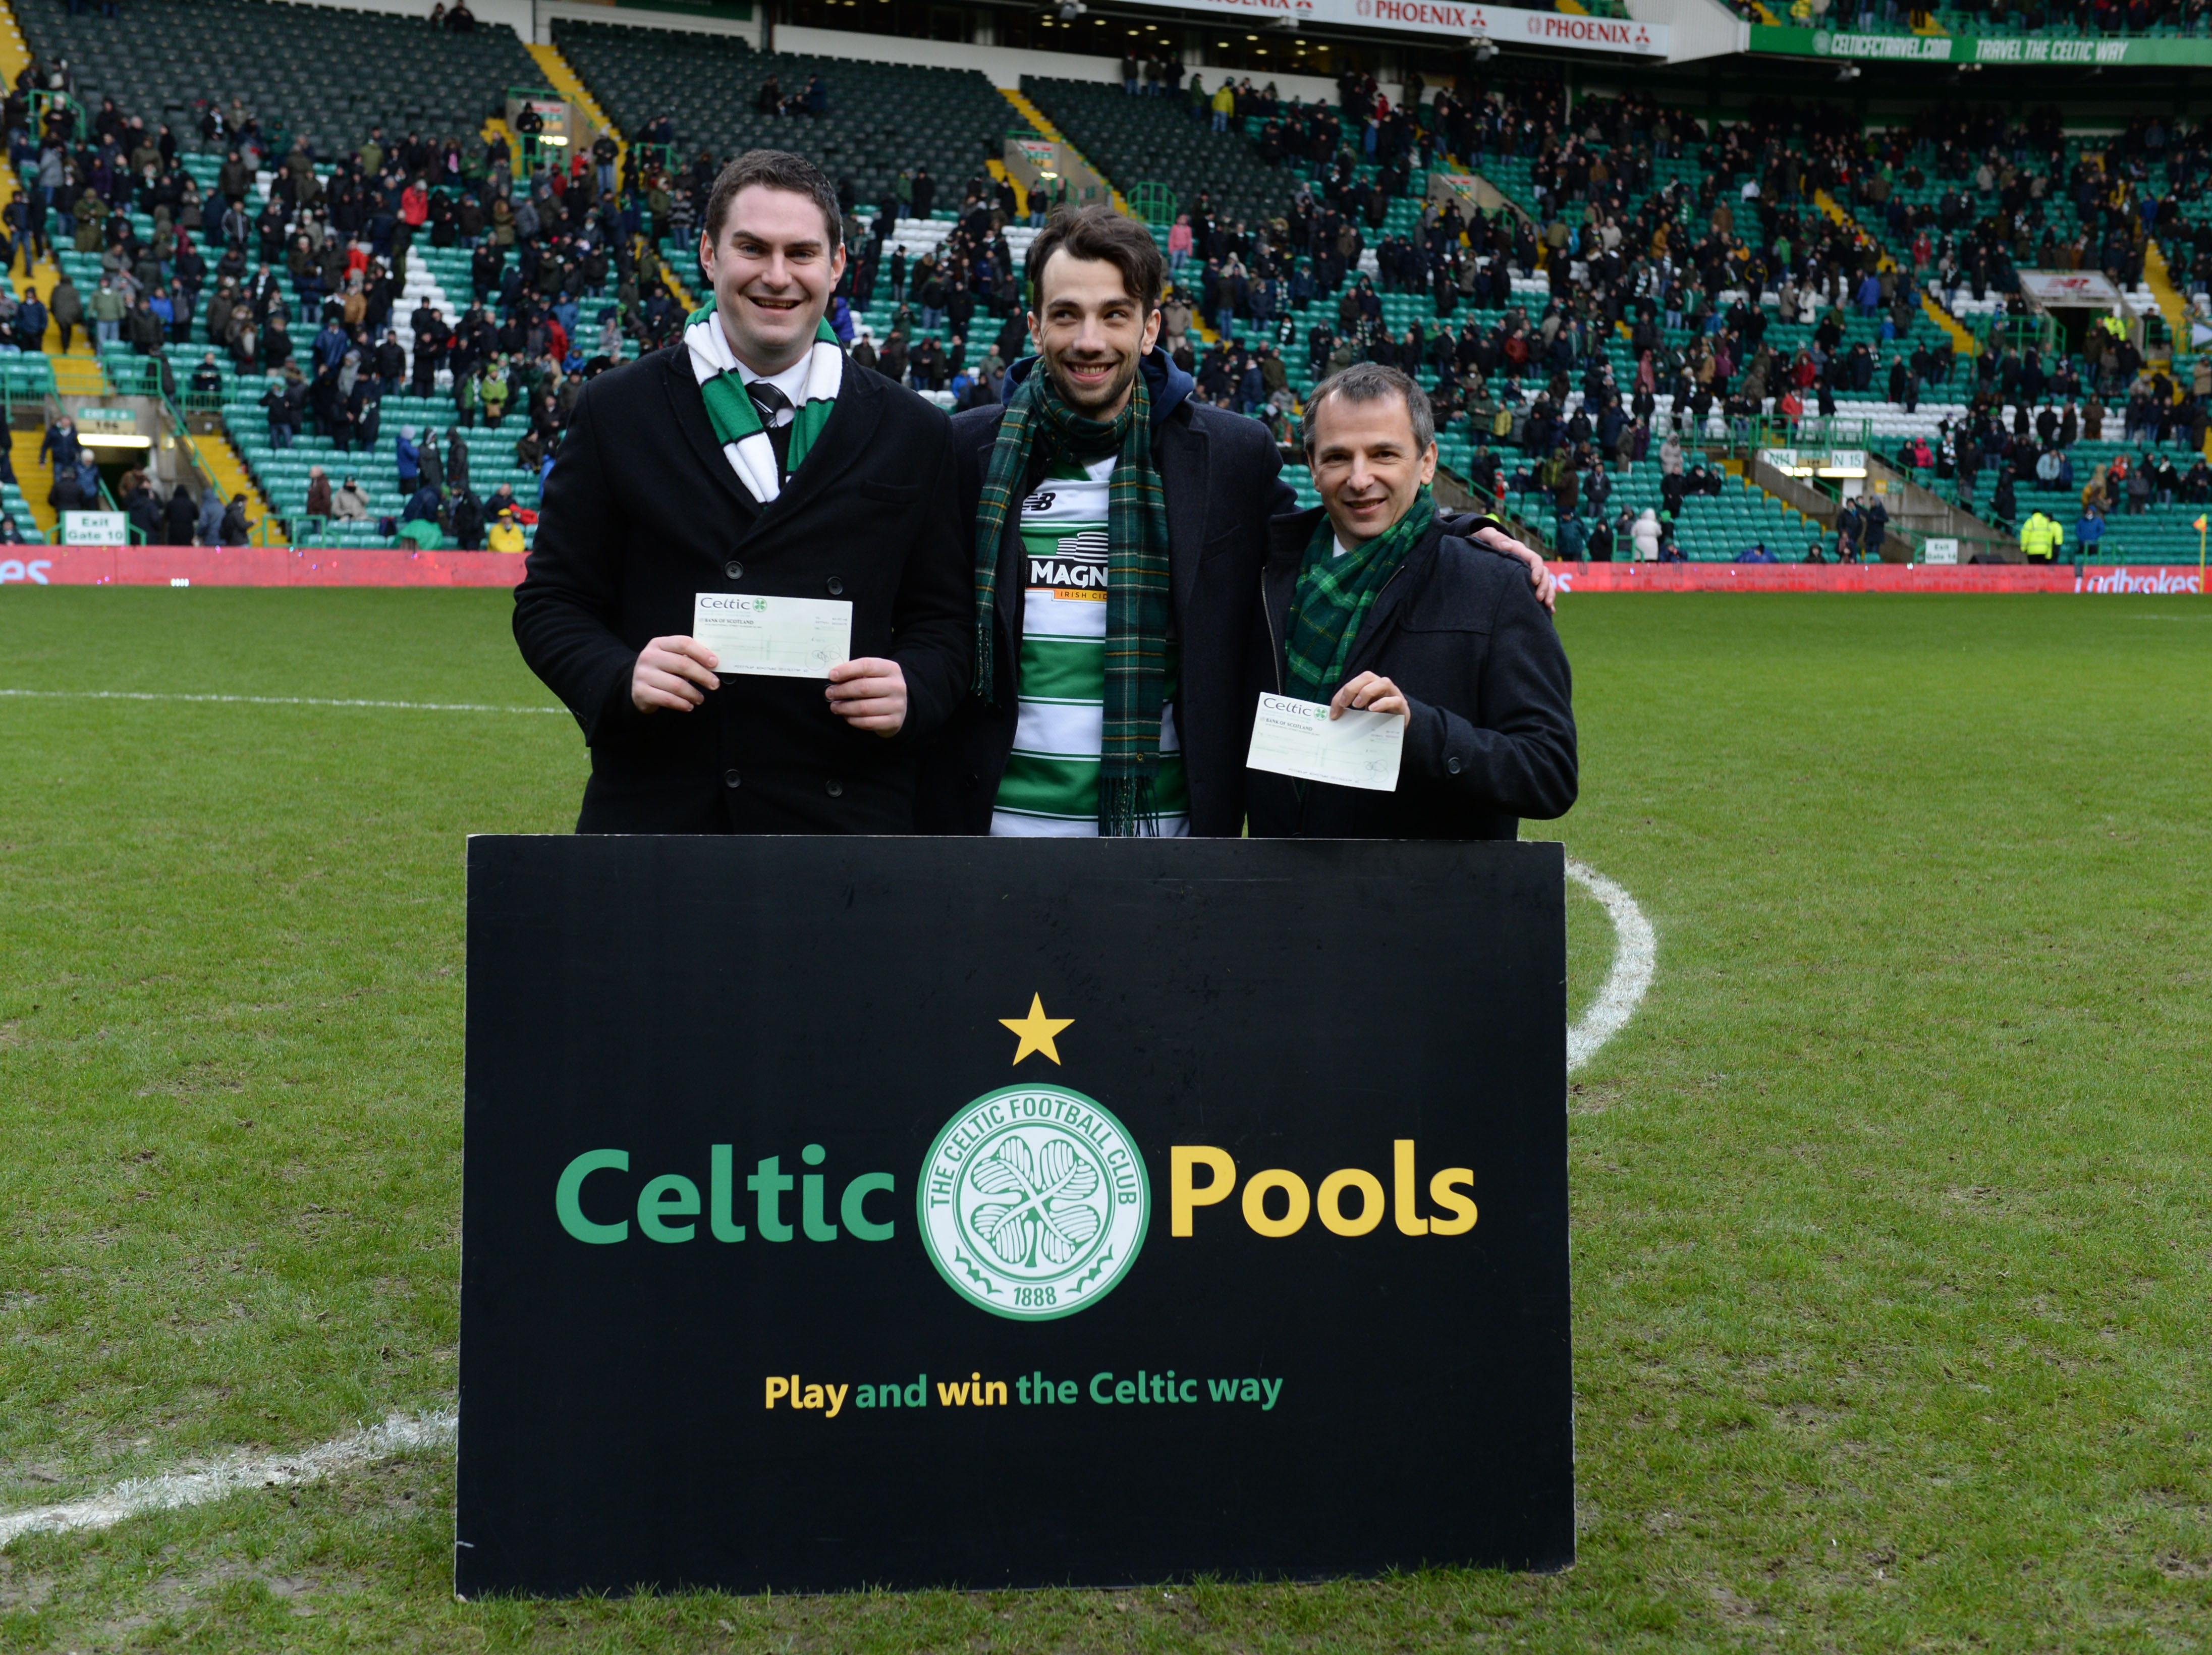 Celtic Pools Team